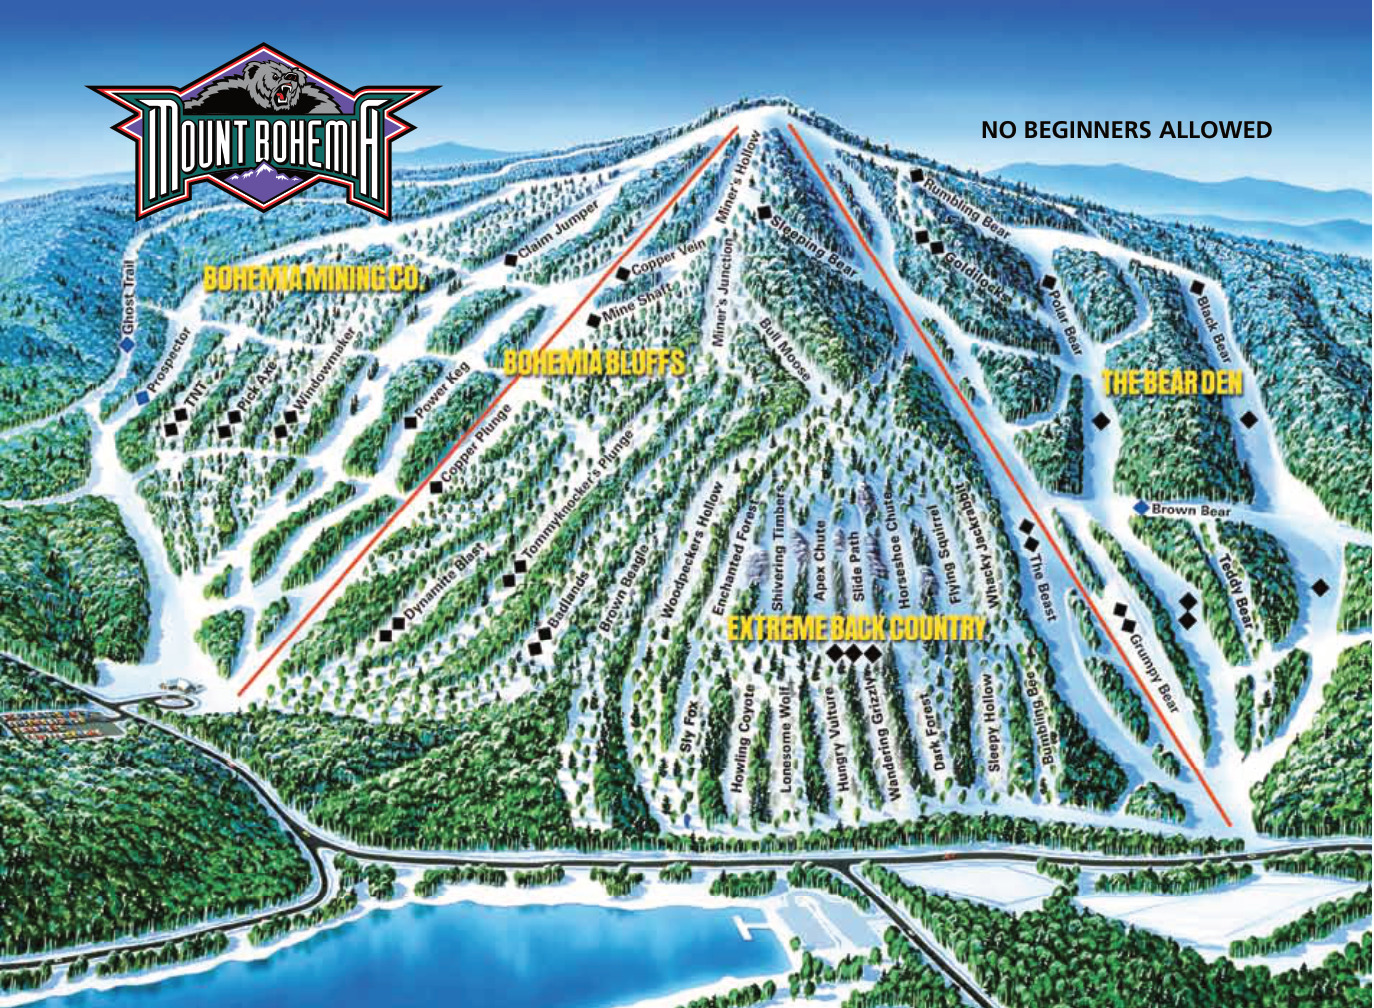 trail map copper mountain with 428 on 428 likewise Go West Great Sxs Atv Riding Opportunities Abound as well Maps Of Alaska Lakes as well Best Single Day Ski Destinations Around Denver furthermore Mountain Resort Trail Map.